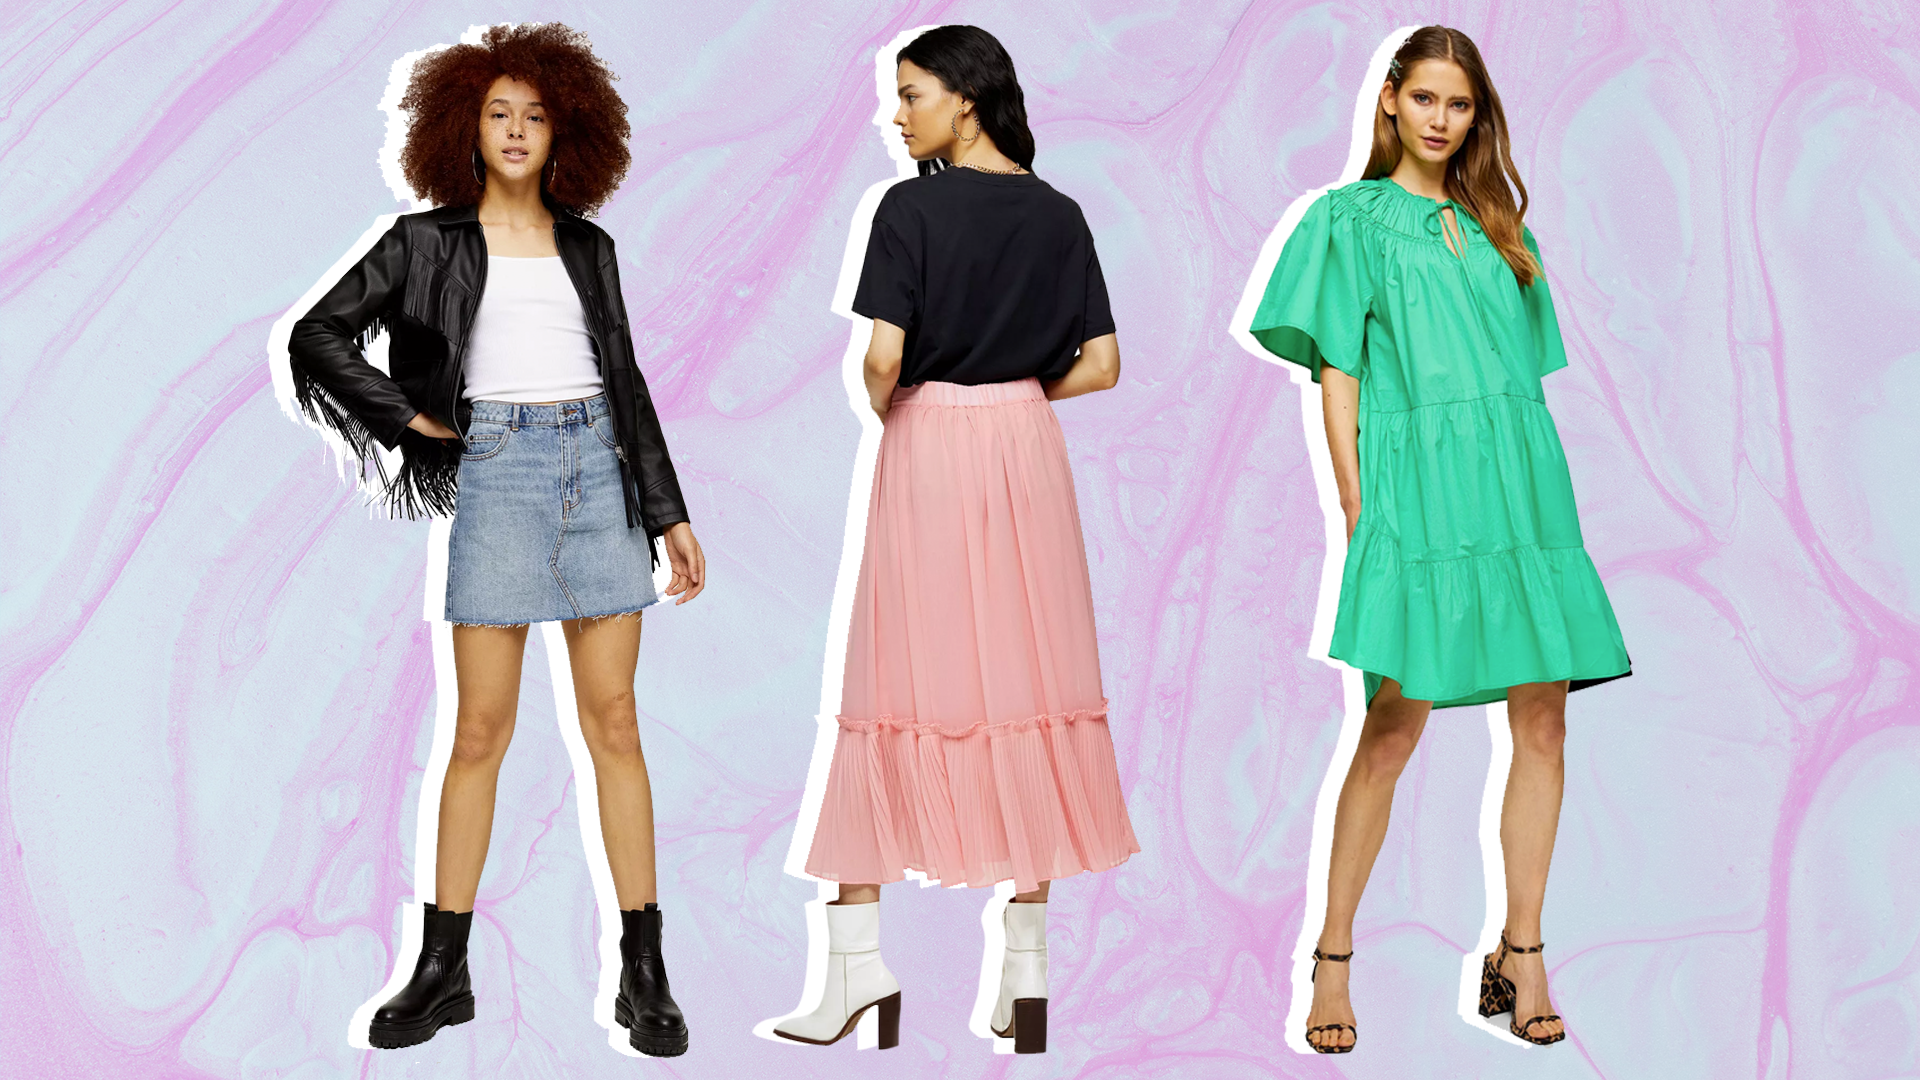 Topshop's 50%-Off Sale Is the Perfect Excuse to Stock Up On Cute Summer Looks